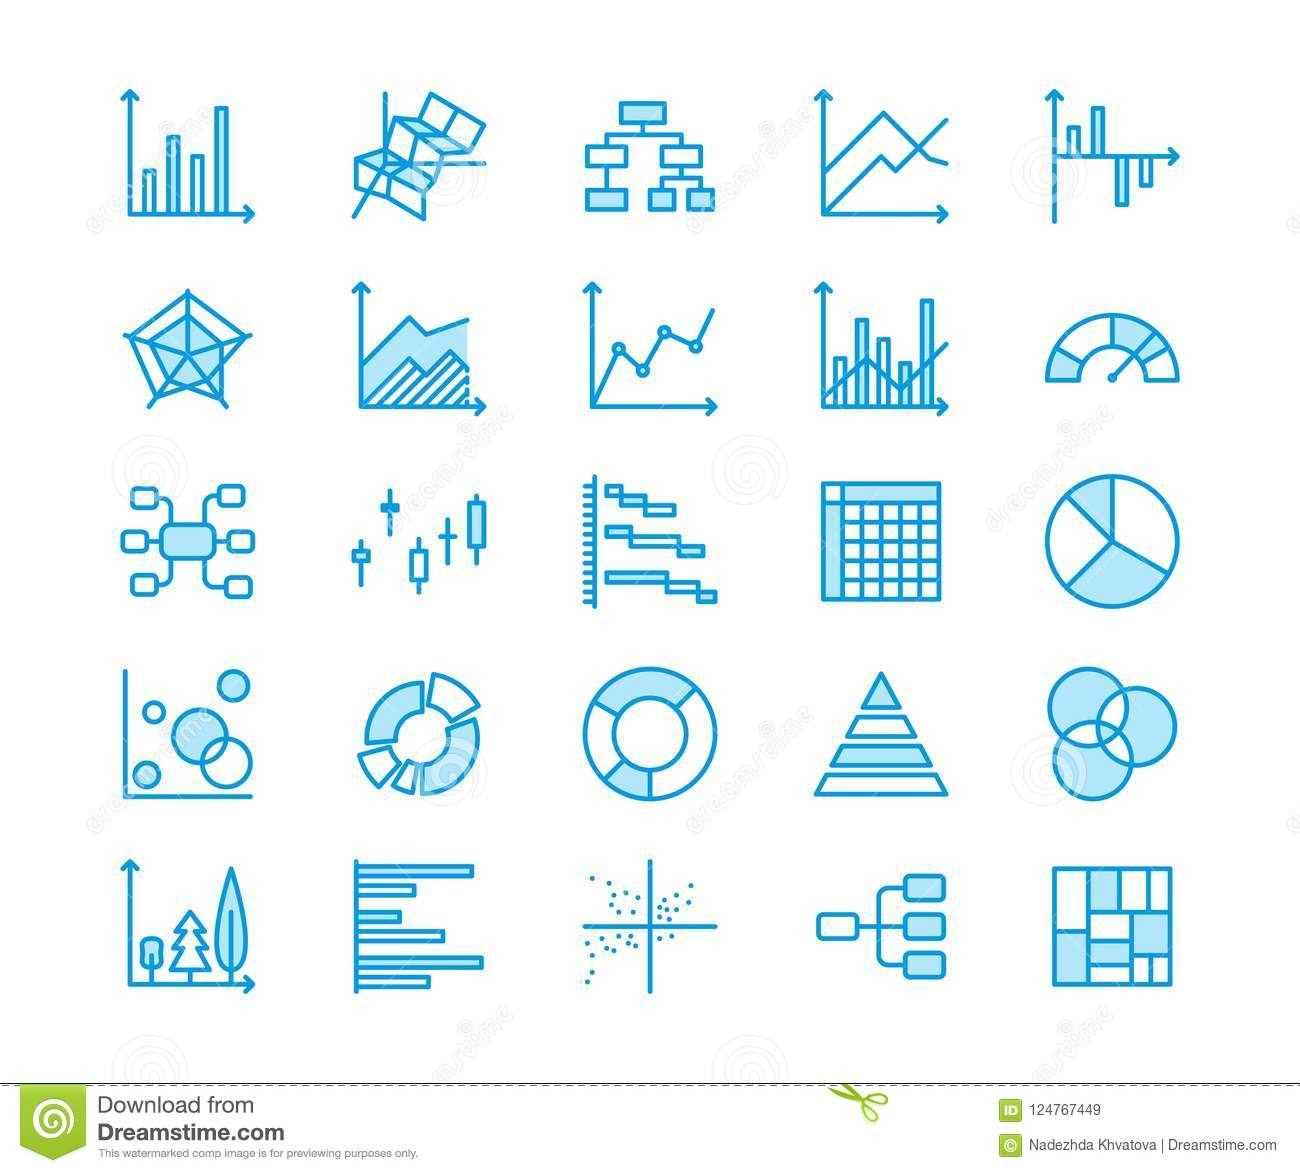 chart types flat line icons linear graph, column, pie donut diagram Block Diagram Linear Accelerator linear graph, column, pie donut diagram, financial report illustrations, infographic thin signs business statistic, data analysis pixel perfect 64x64